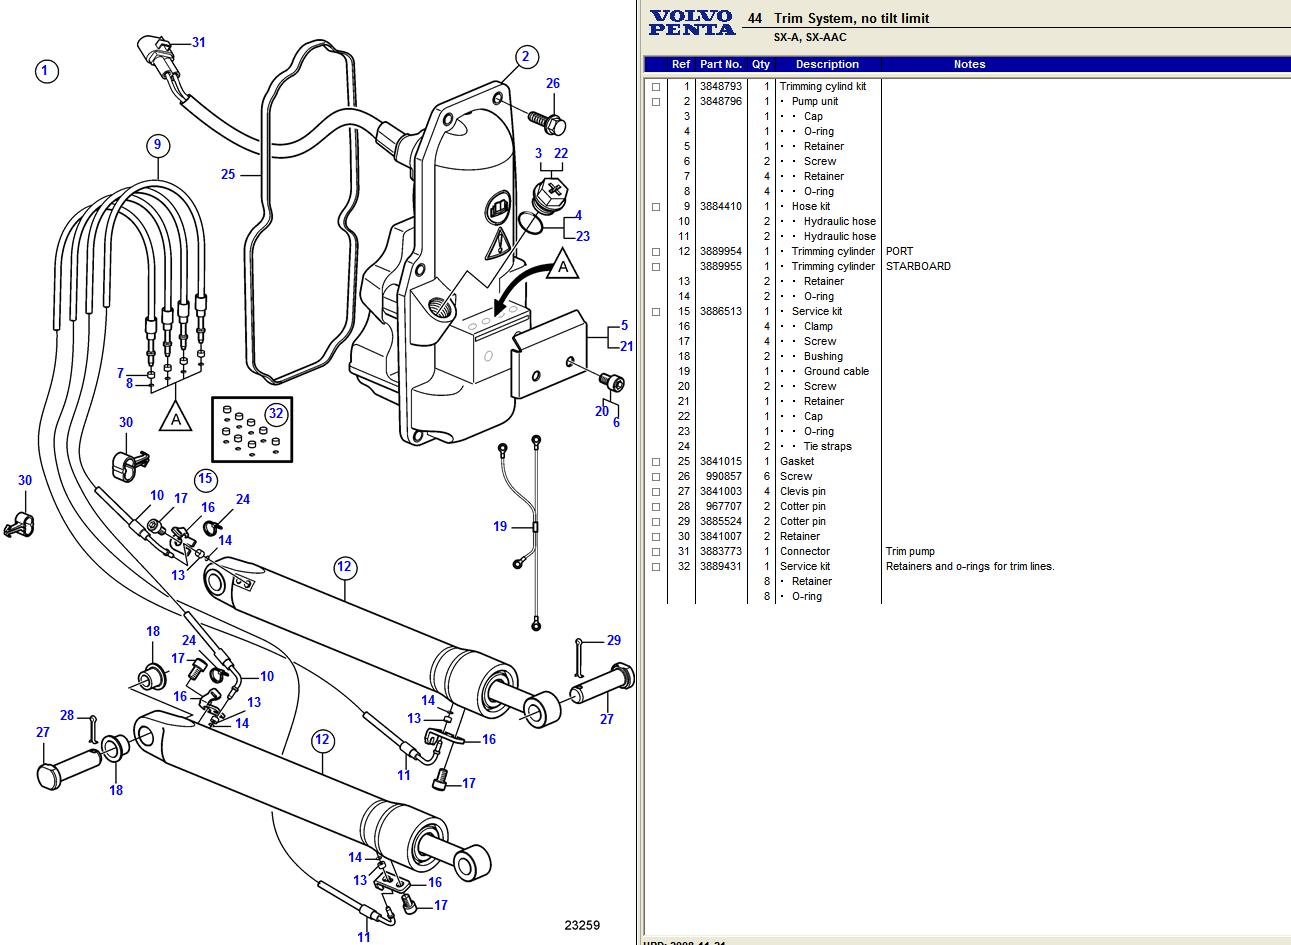 2009 09 01_010950_VPexternaltrimpump boatered 1993 wellcraft tilt trim problem mercruiser trim gauge wiring diagram at alyssarenee.co